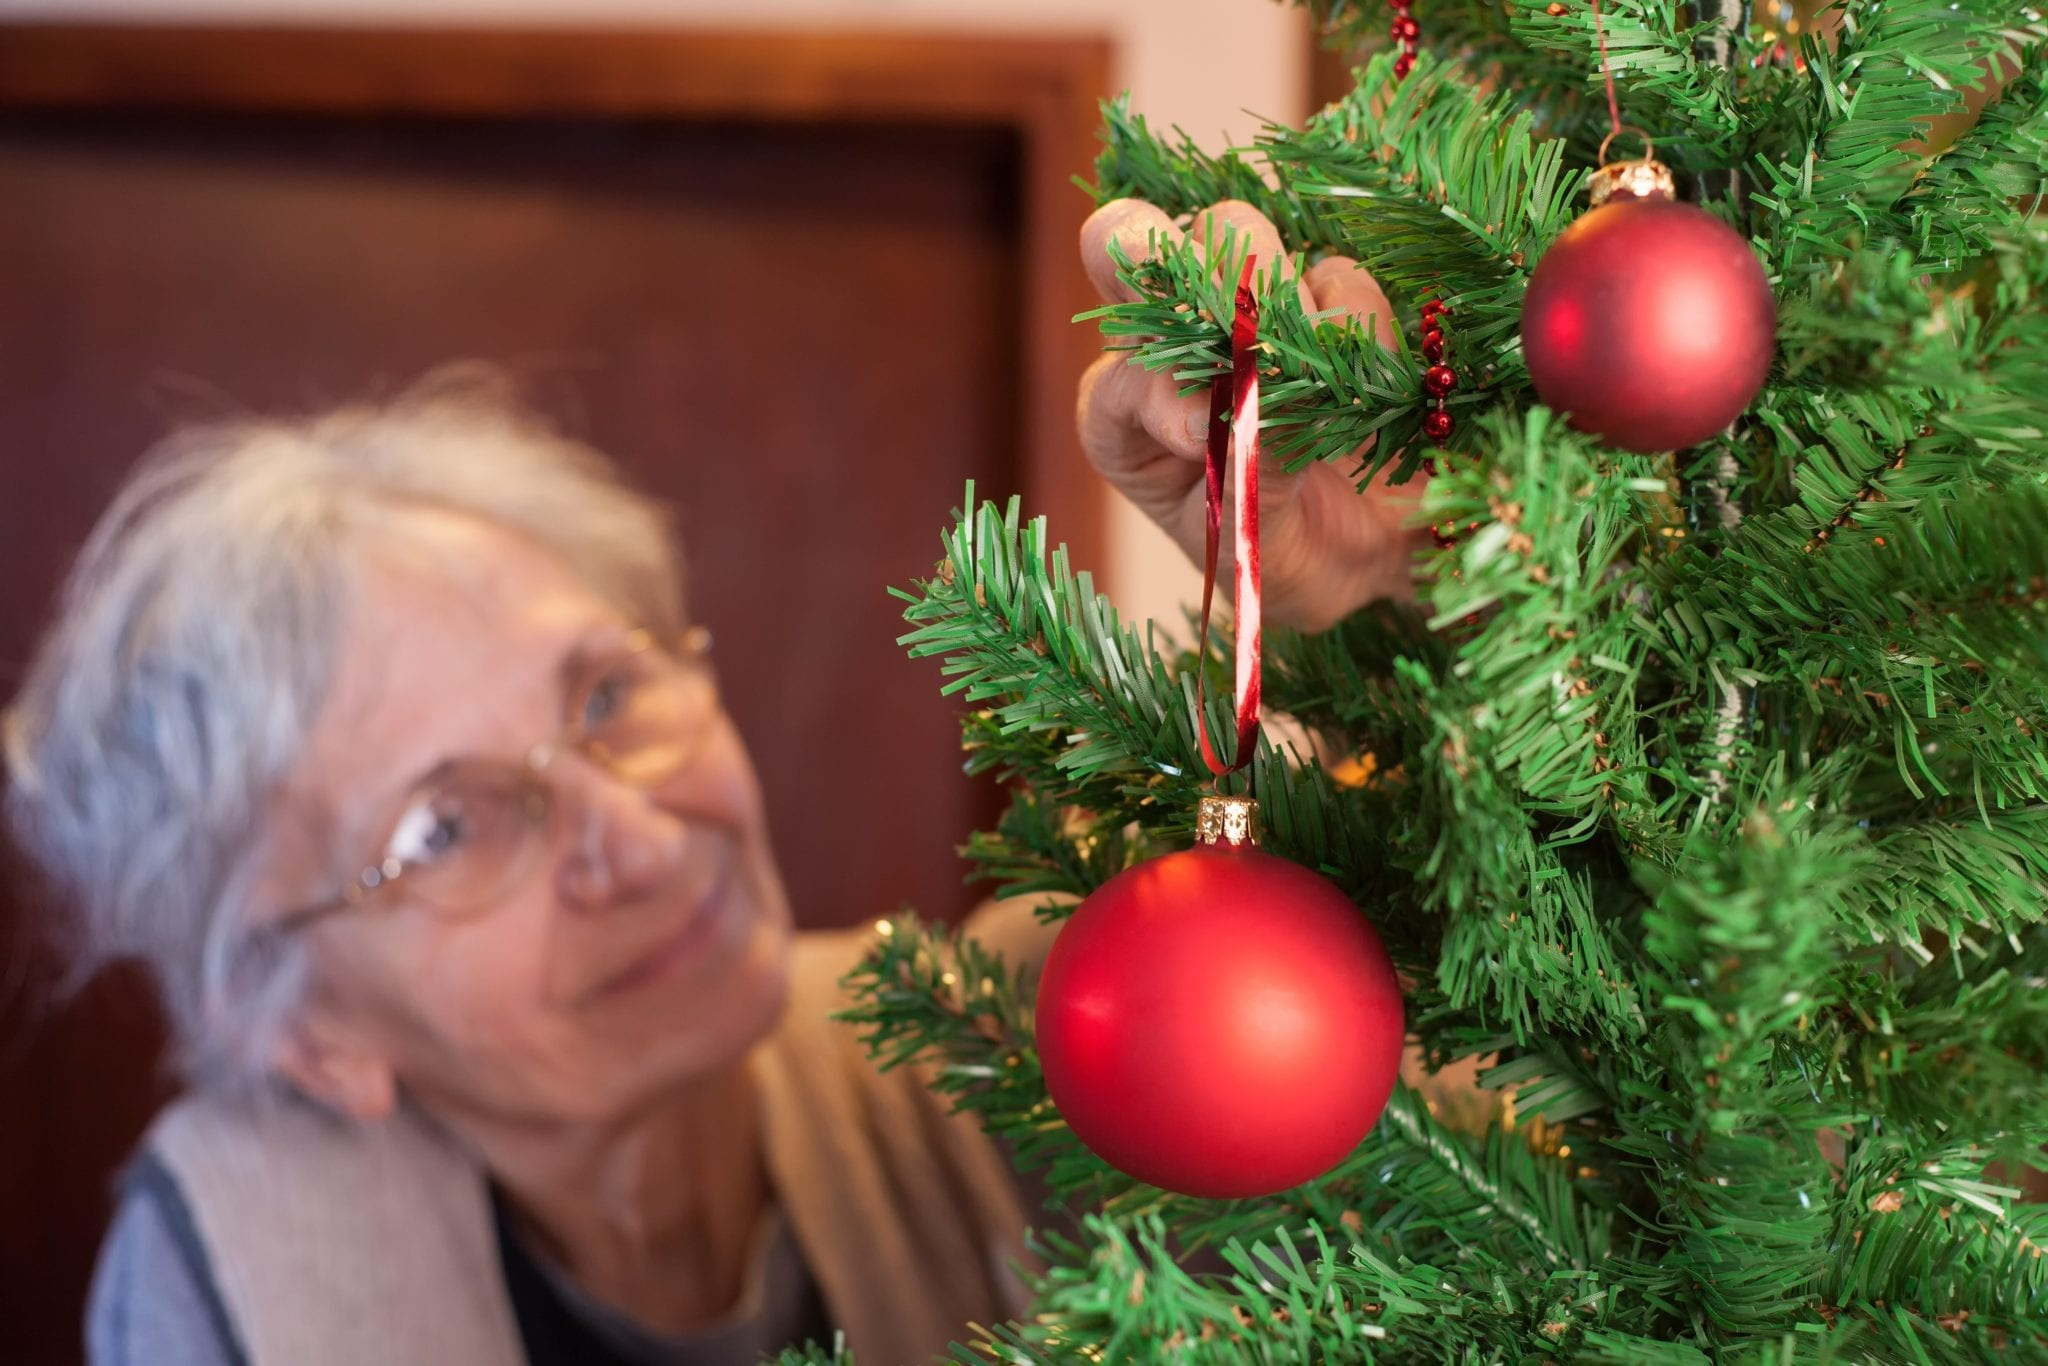 5 Tips to Enjoy the Holidays, Even With Hearing Loss